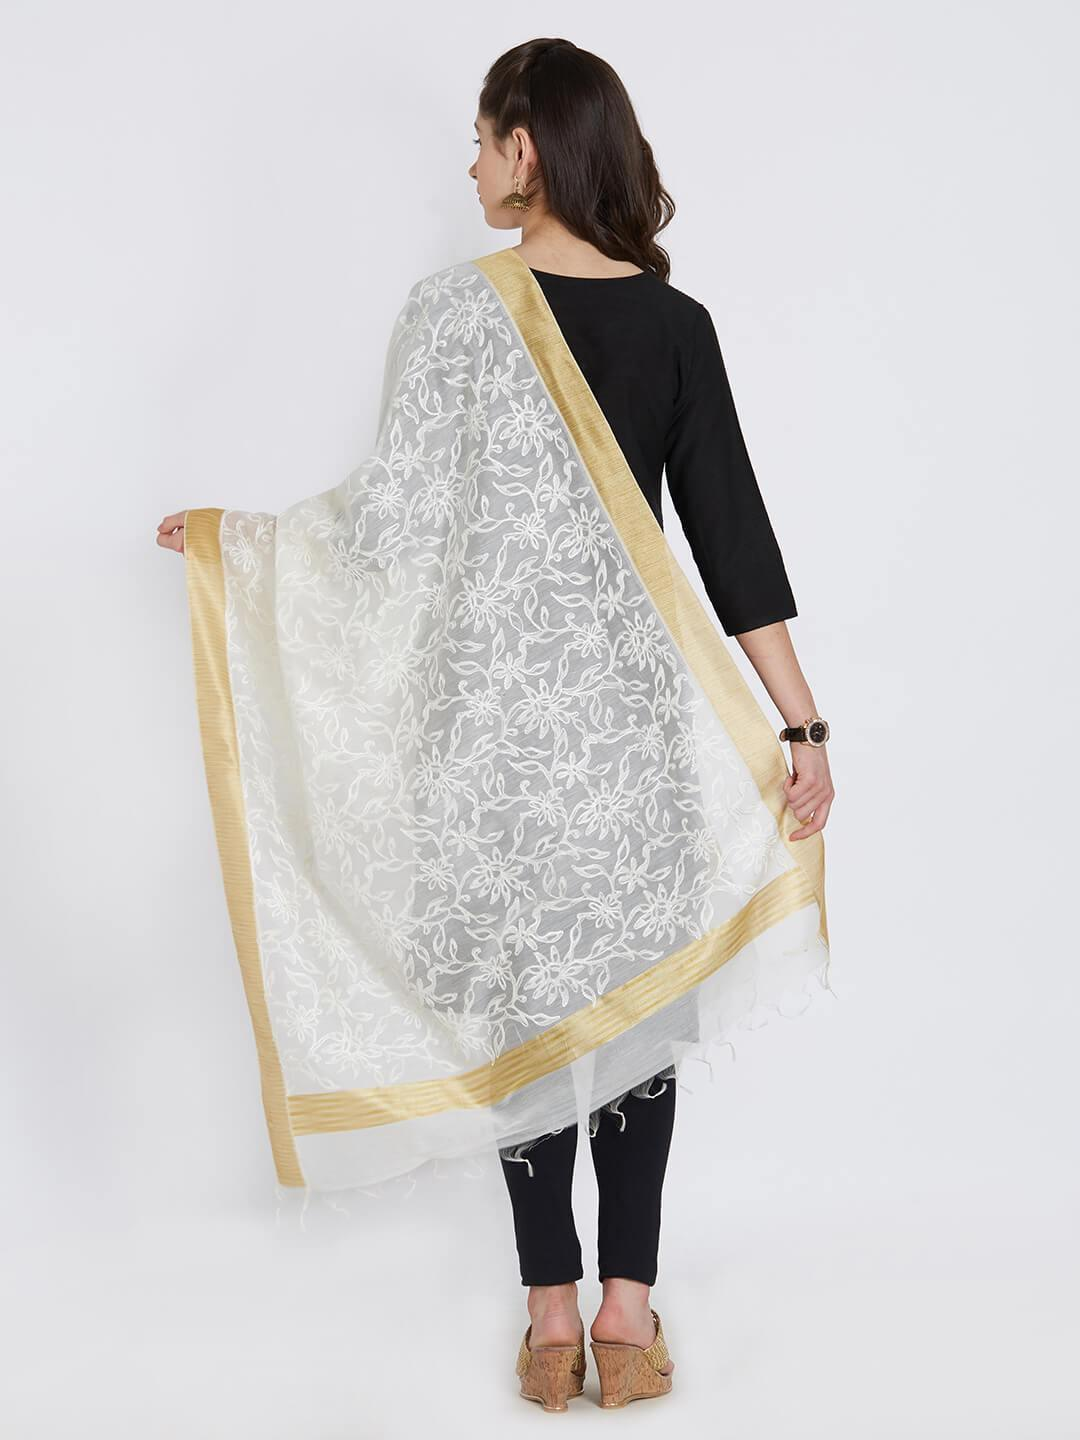 Off-White Chanderi Dupatta with Embroidery